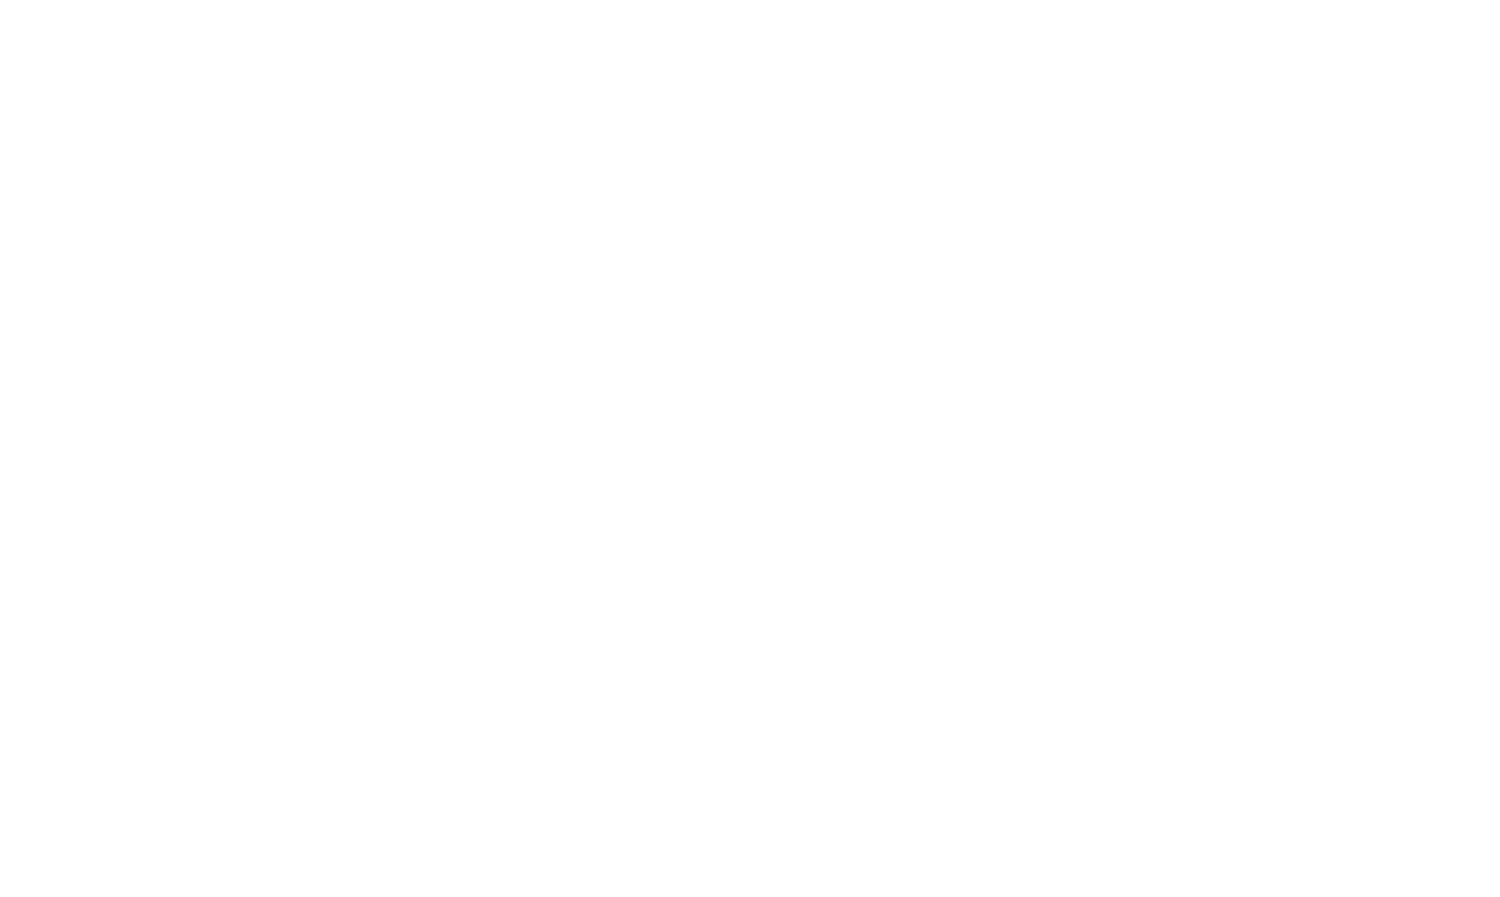 Chloe Parasmo Make-up Artist